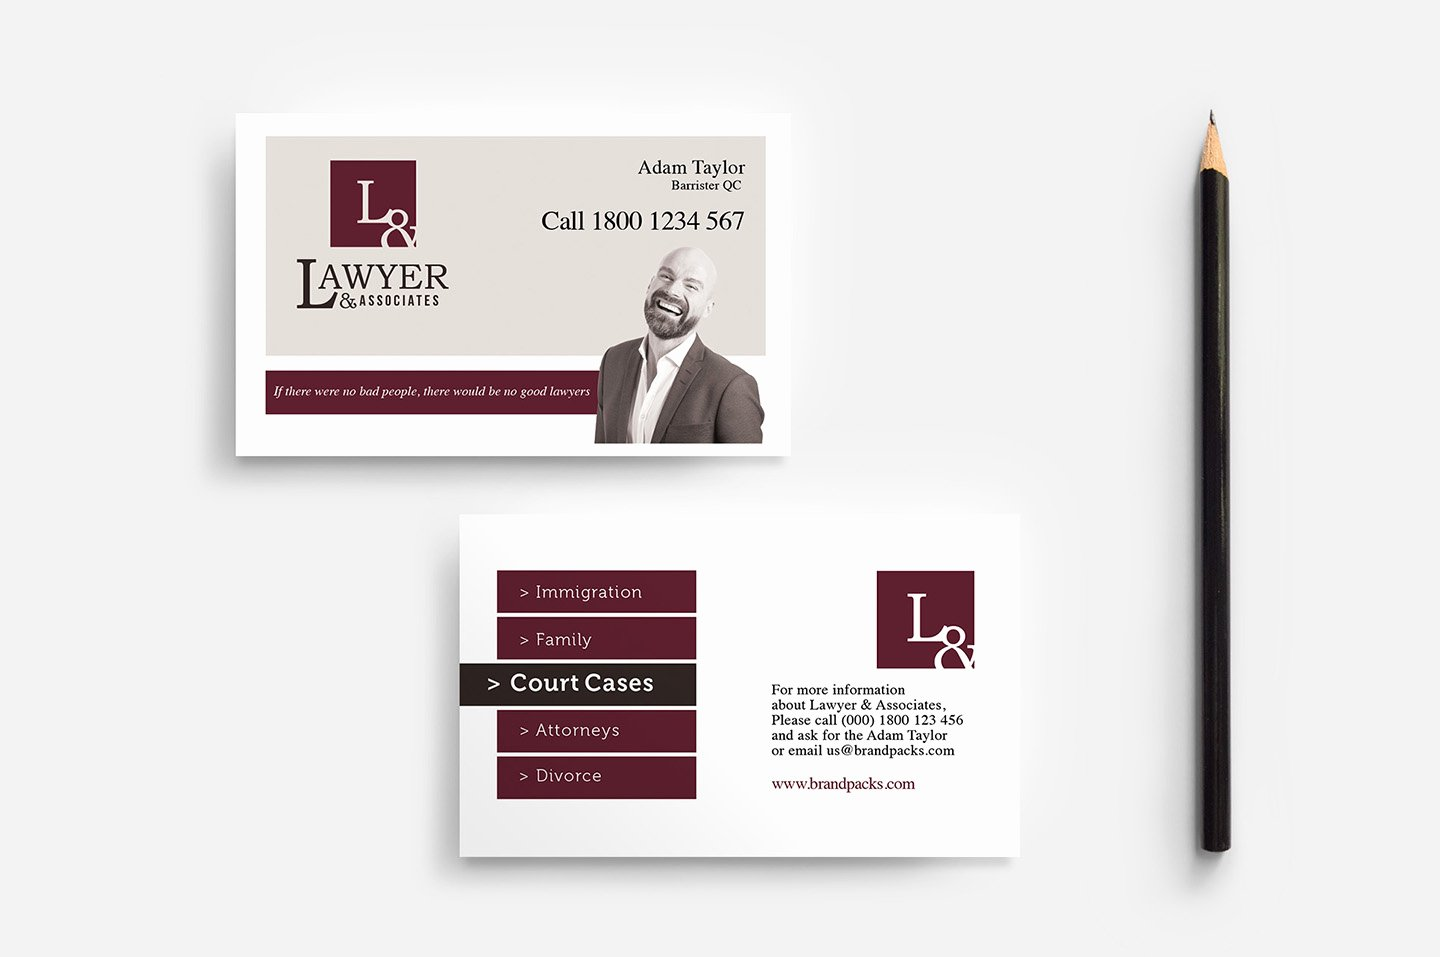 Law Firm Business Cards Inspirational Law Firm Business Card Template In Psd Ai & Vector